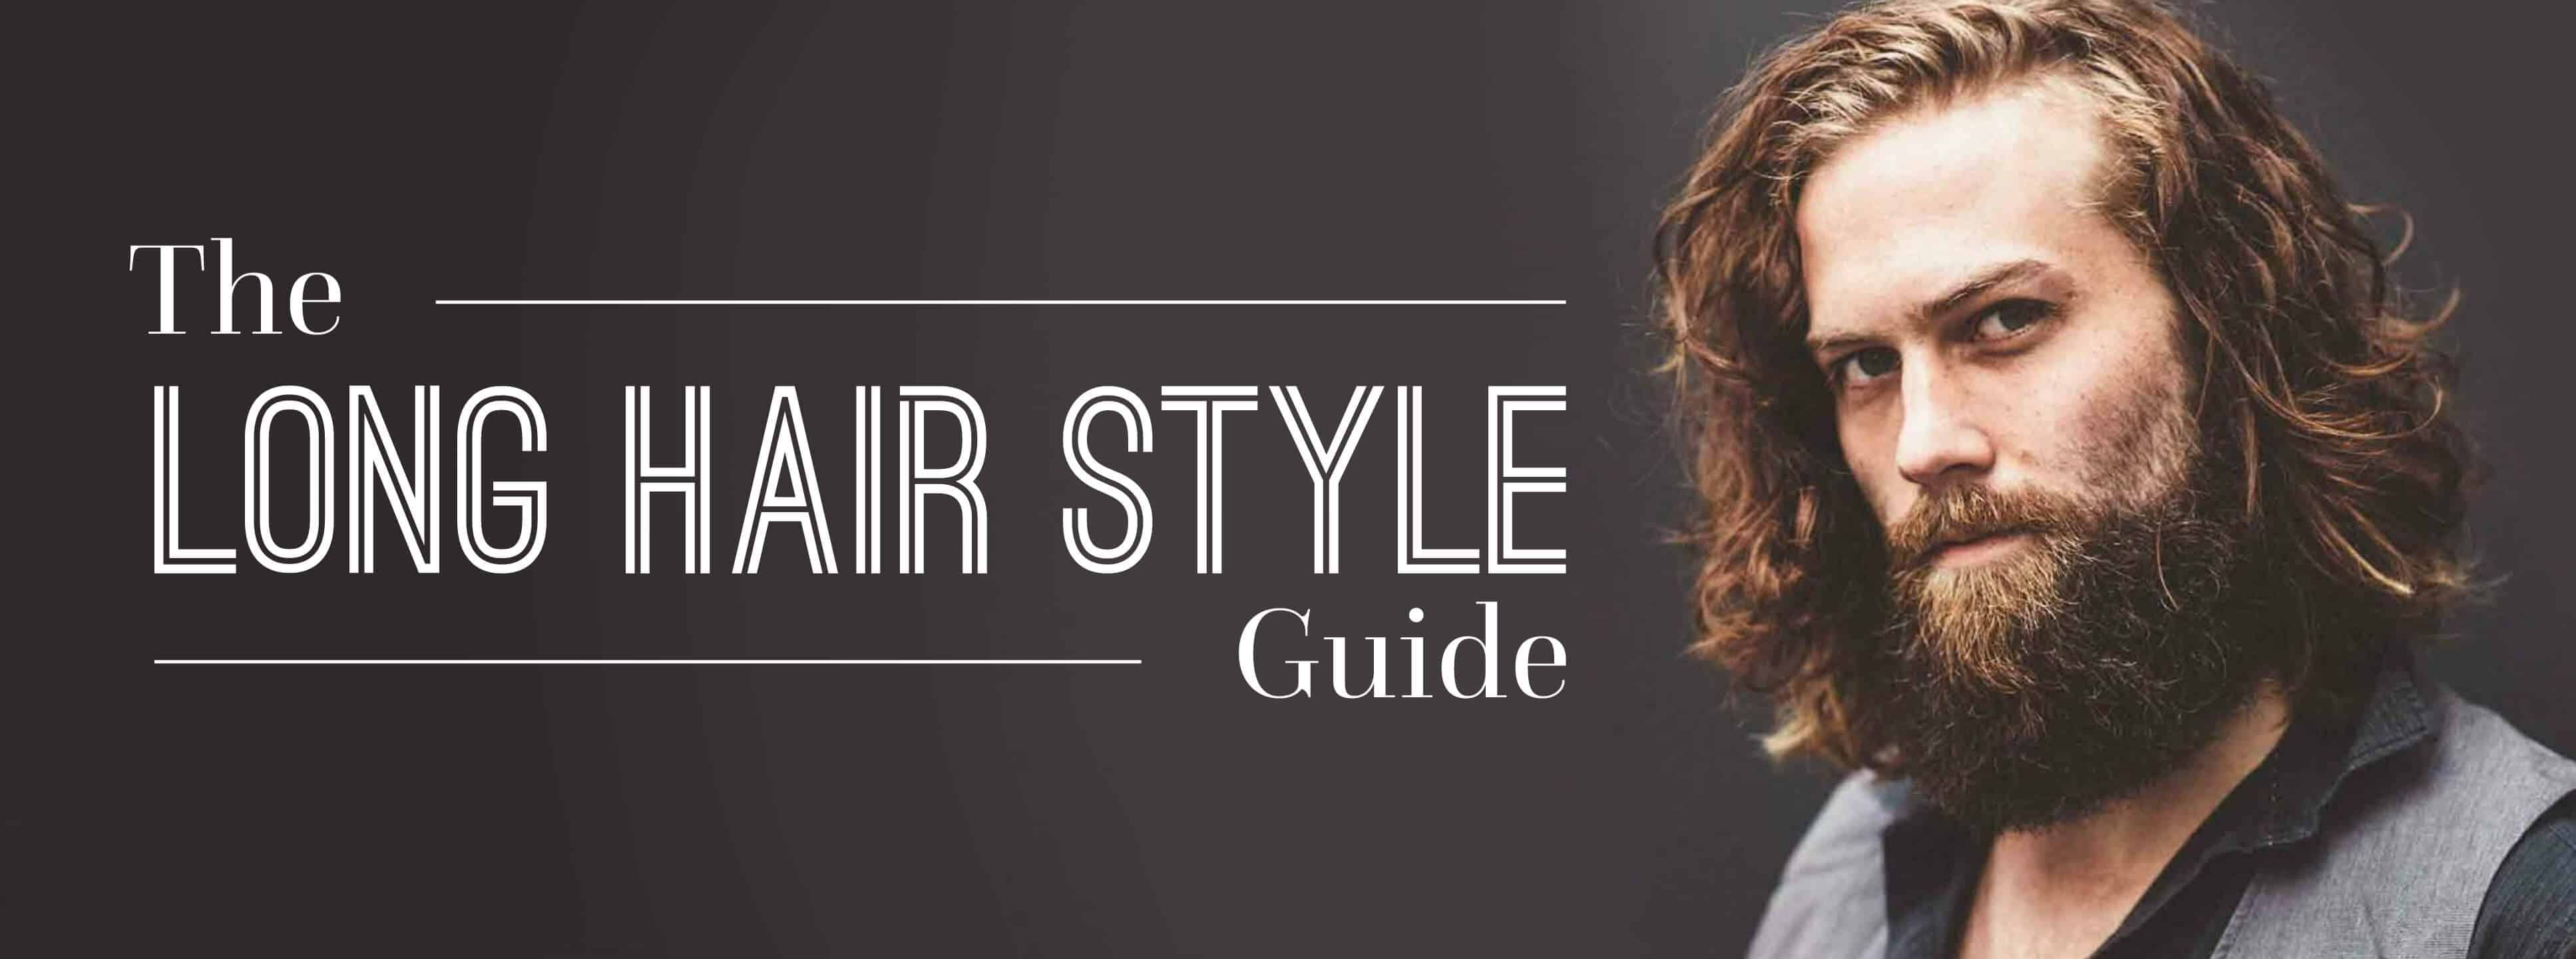 The Long Hair Style Guide